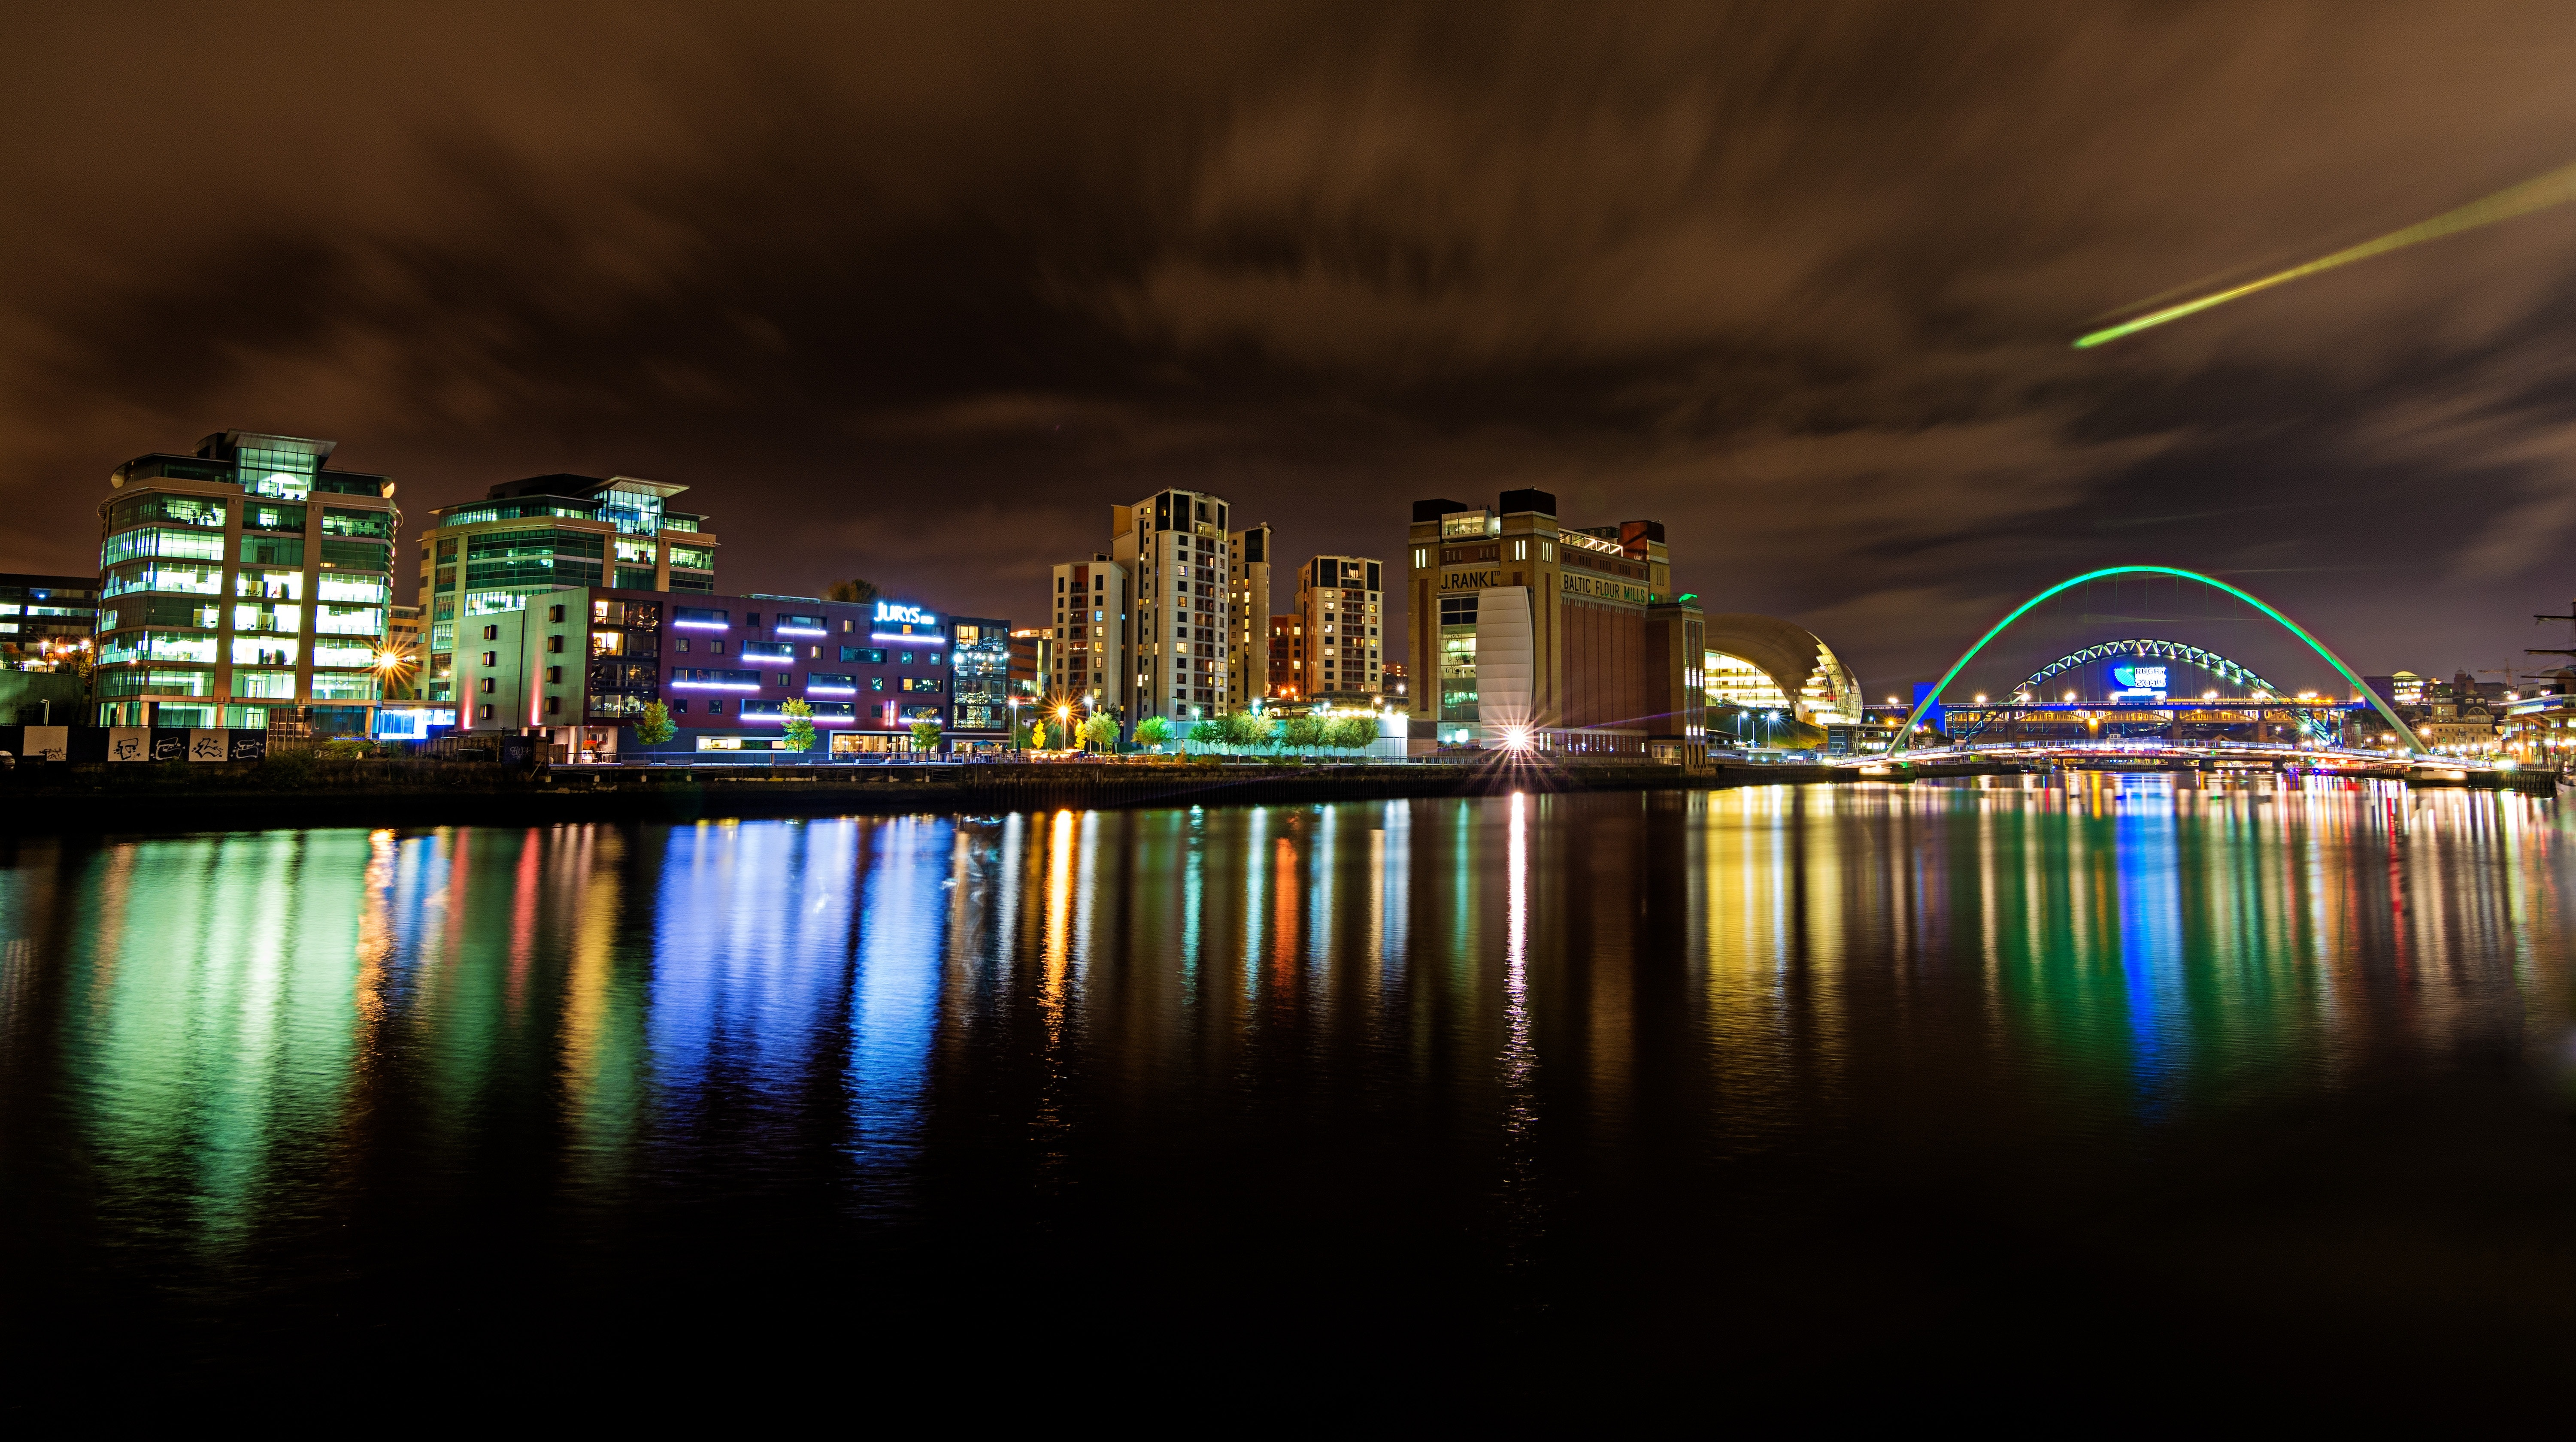 Cityscape at Nighttime Reflecting on Body of Water, Architecture, Water, Travel, Skyscraper, HQ Photo